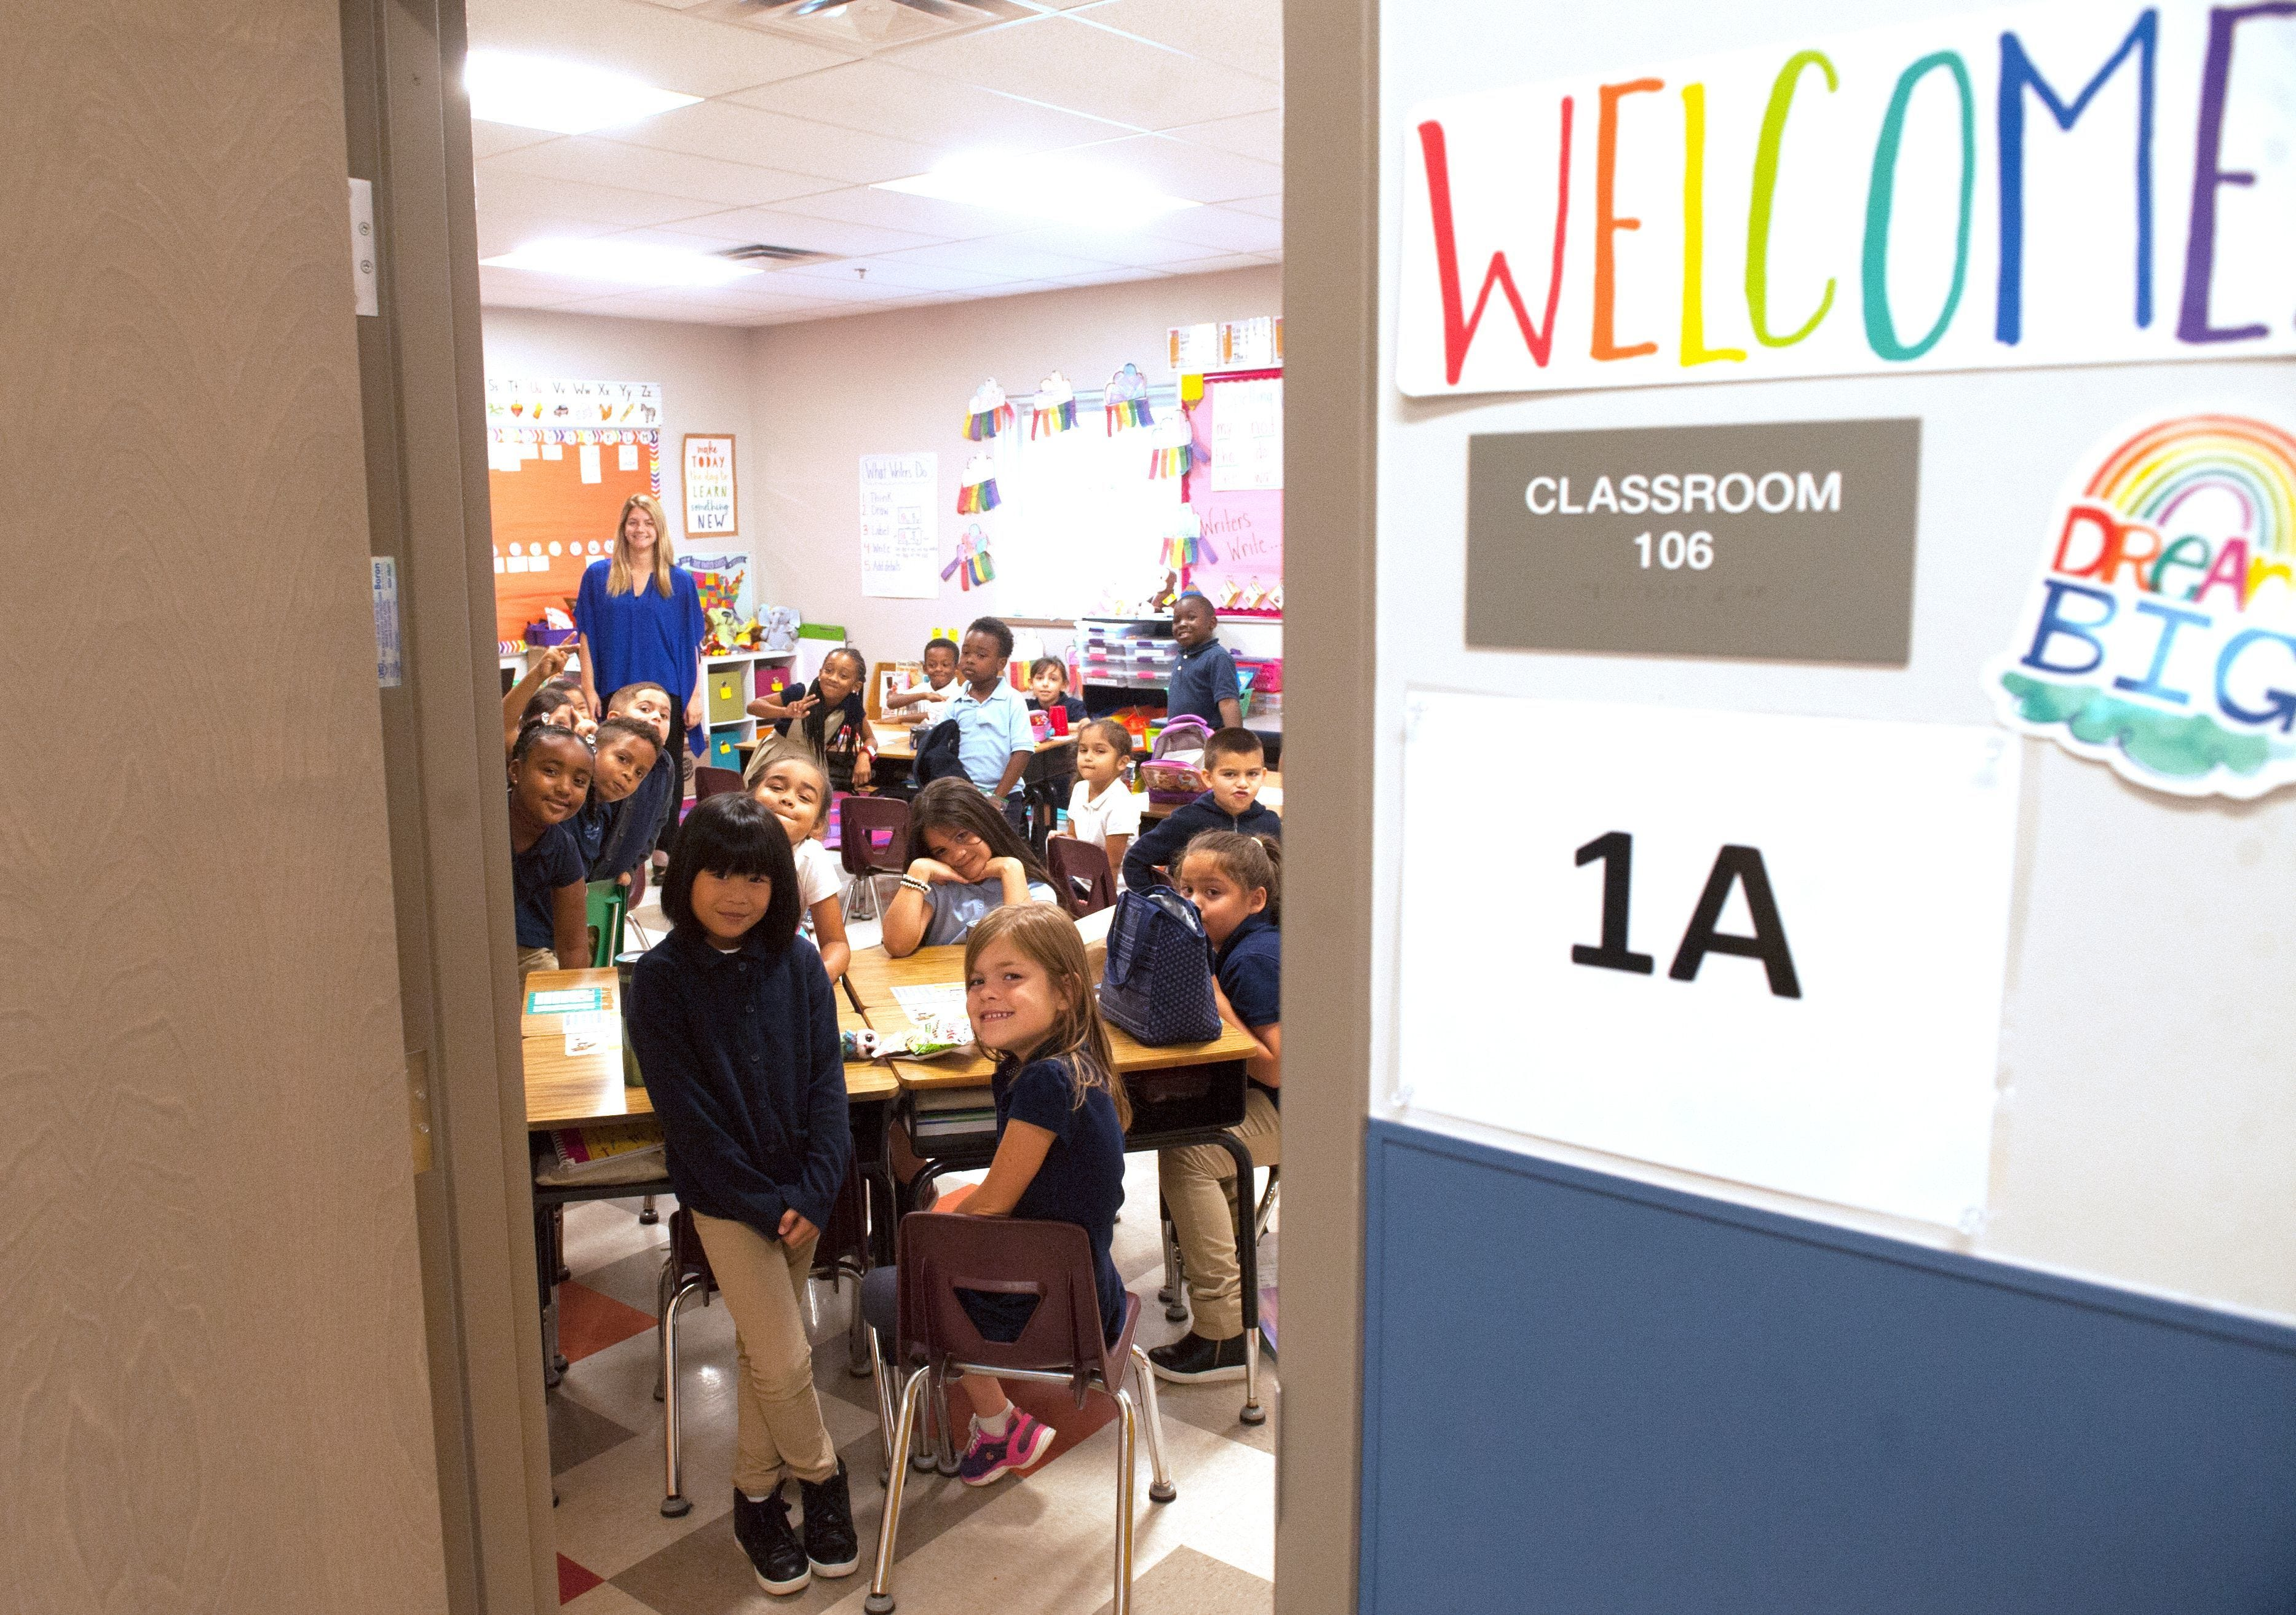 First-grade students posed for a photograph inside their classroom on Friday, Sept. 22, 2017,  minutes after a ribbon-cutting ceremony for the new Vineland Public Charter School.